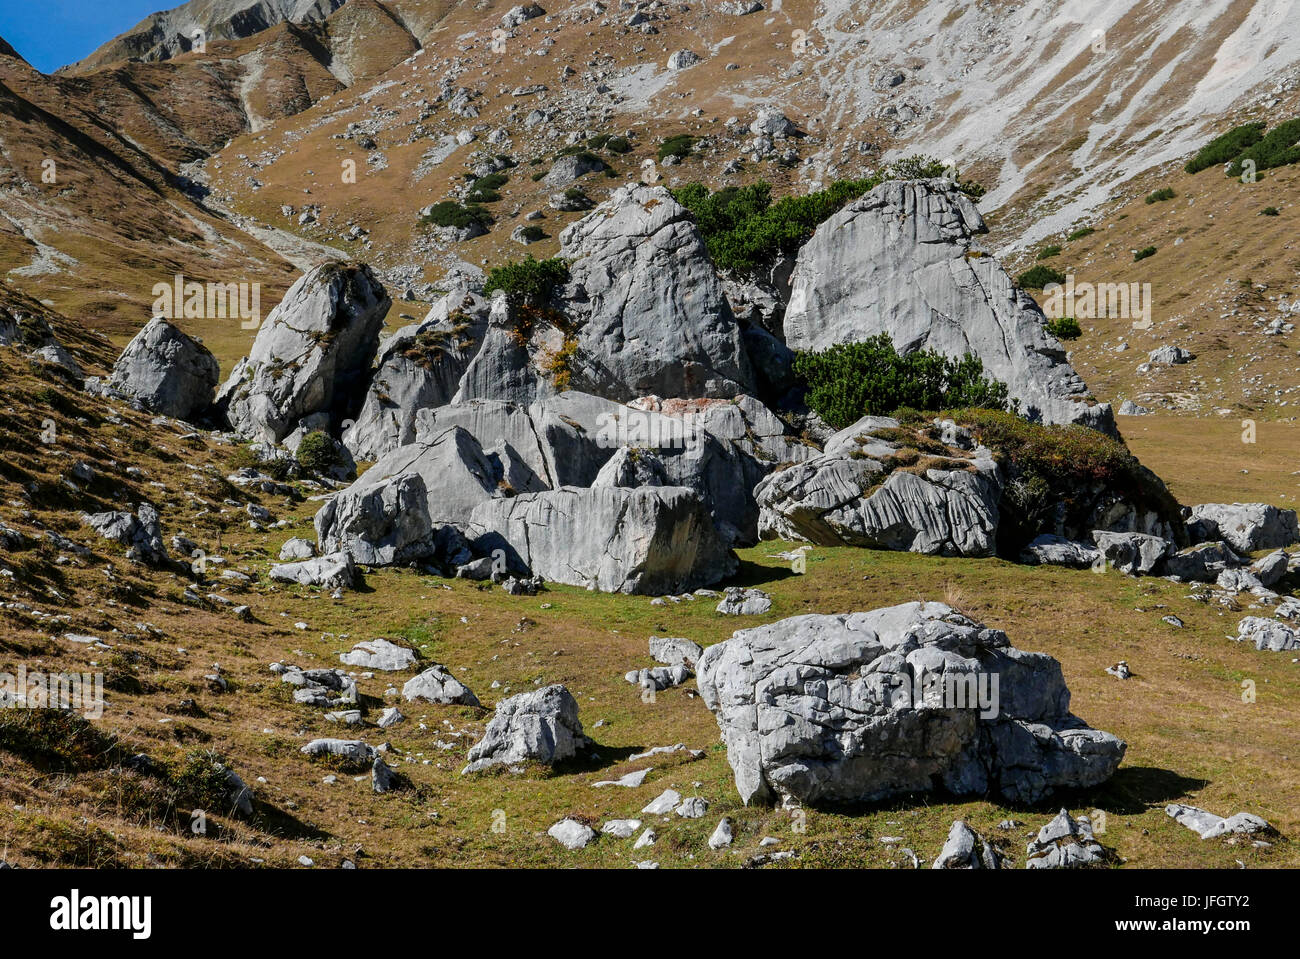 Puittal in Wetterstein Range, boulders, autumn mood, block-littered plateau, Tyrol - Stock Image